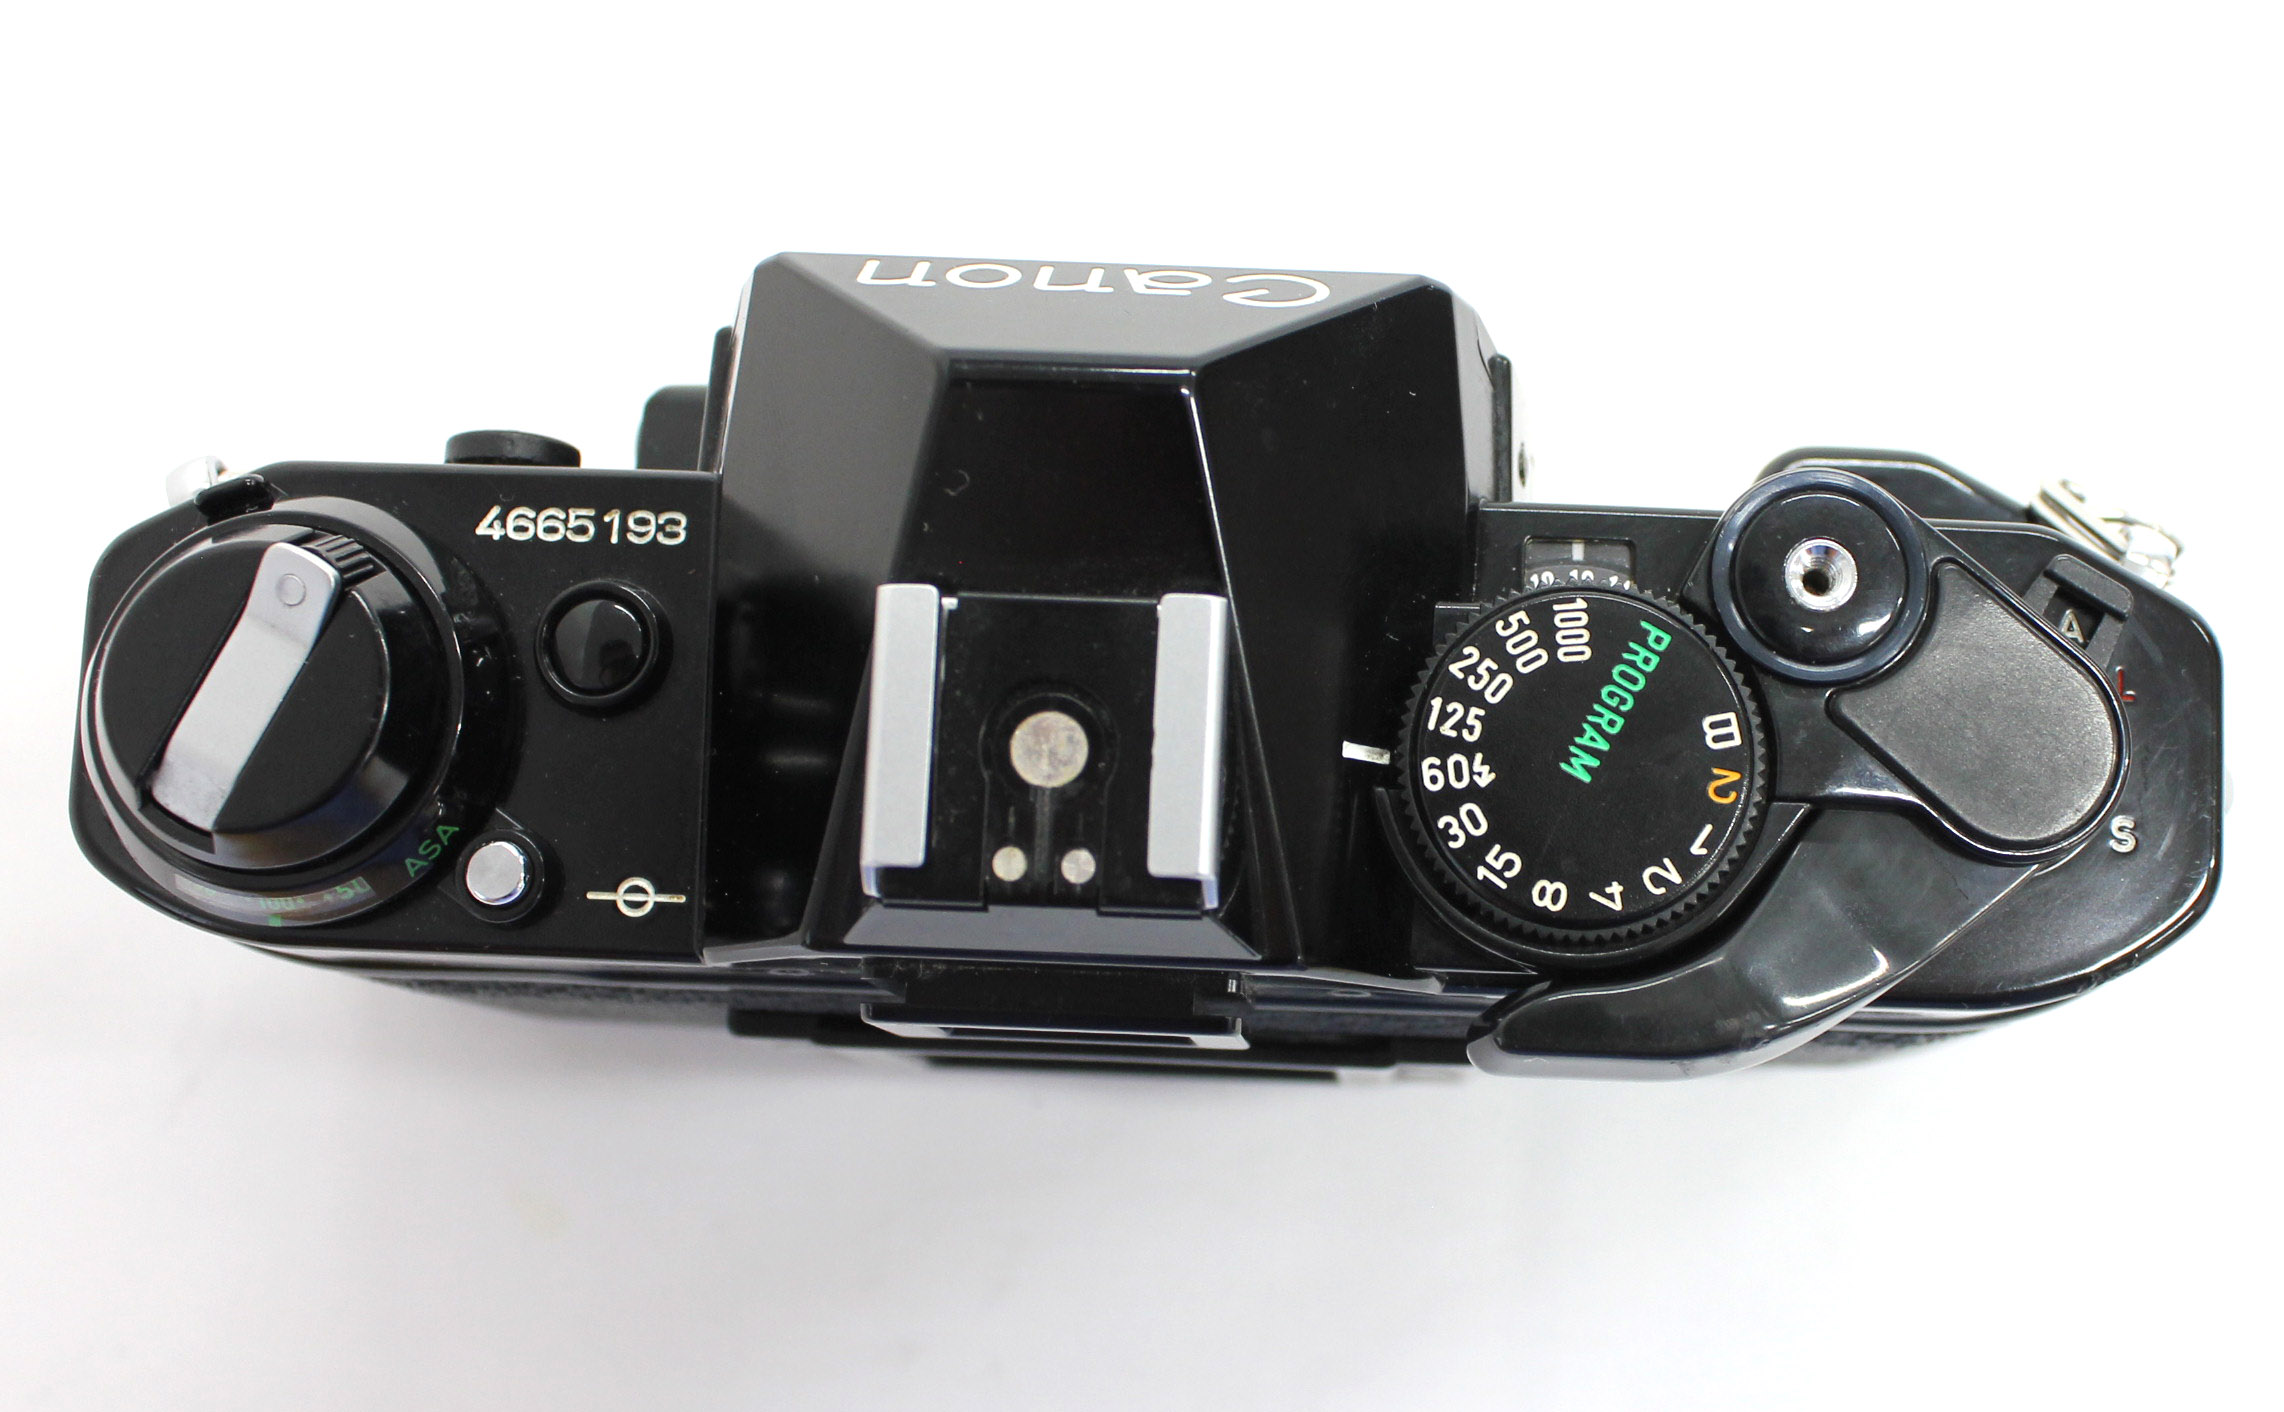 Canon AE-1 Program 35mm SLR Film Camera Black with New FD 35mm F/2.8 Lens from Japan Photo 7